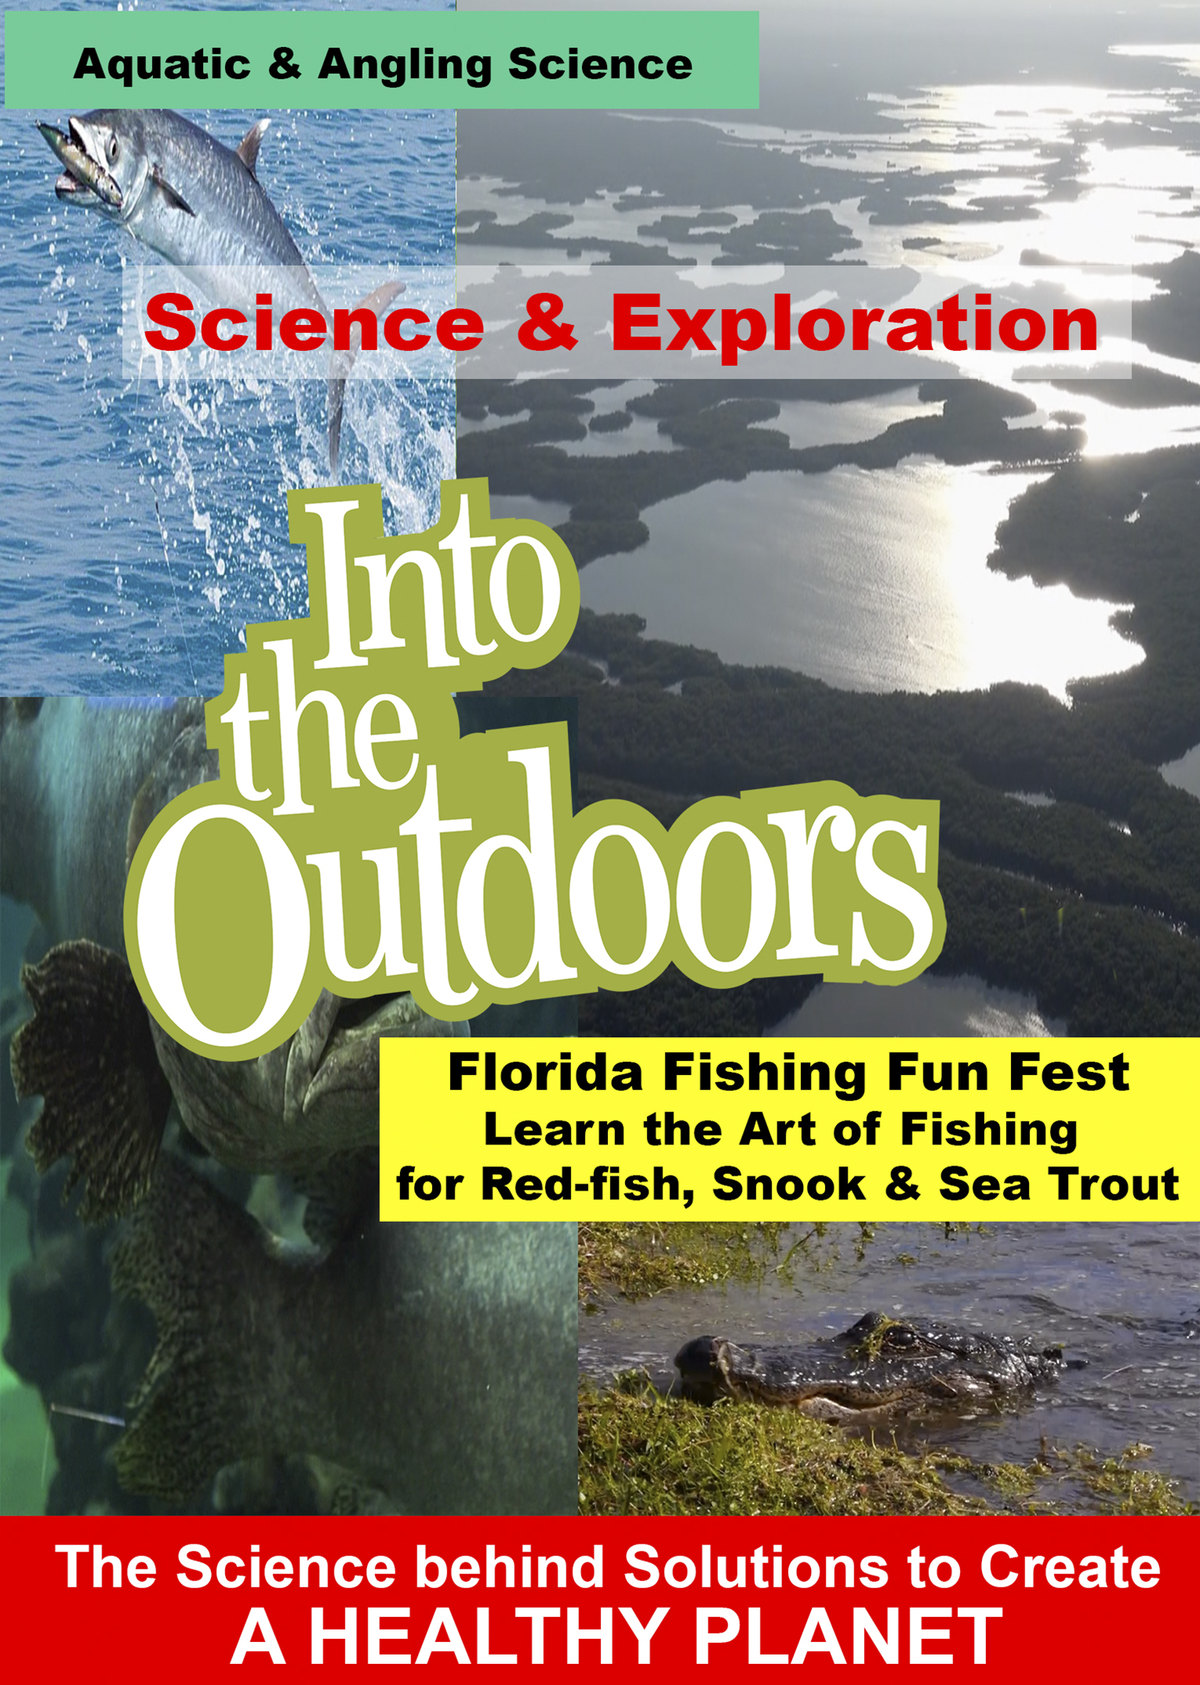 K5008 - Florida Fishing Fun Fest - Learn the Art of Fishing for Red-fish, Snook & Sea Trout